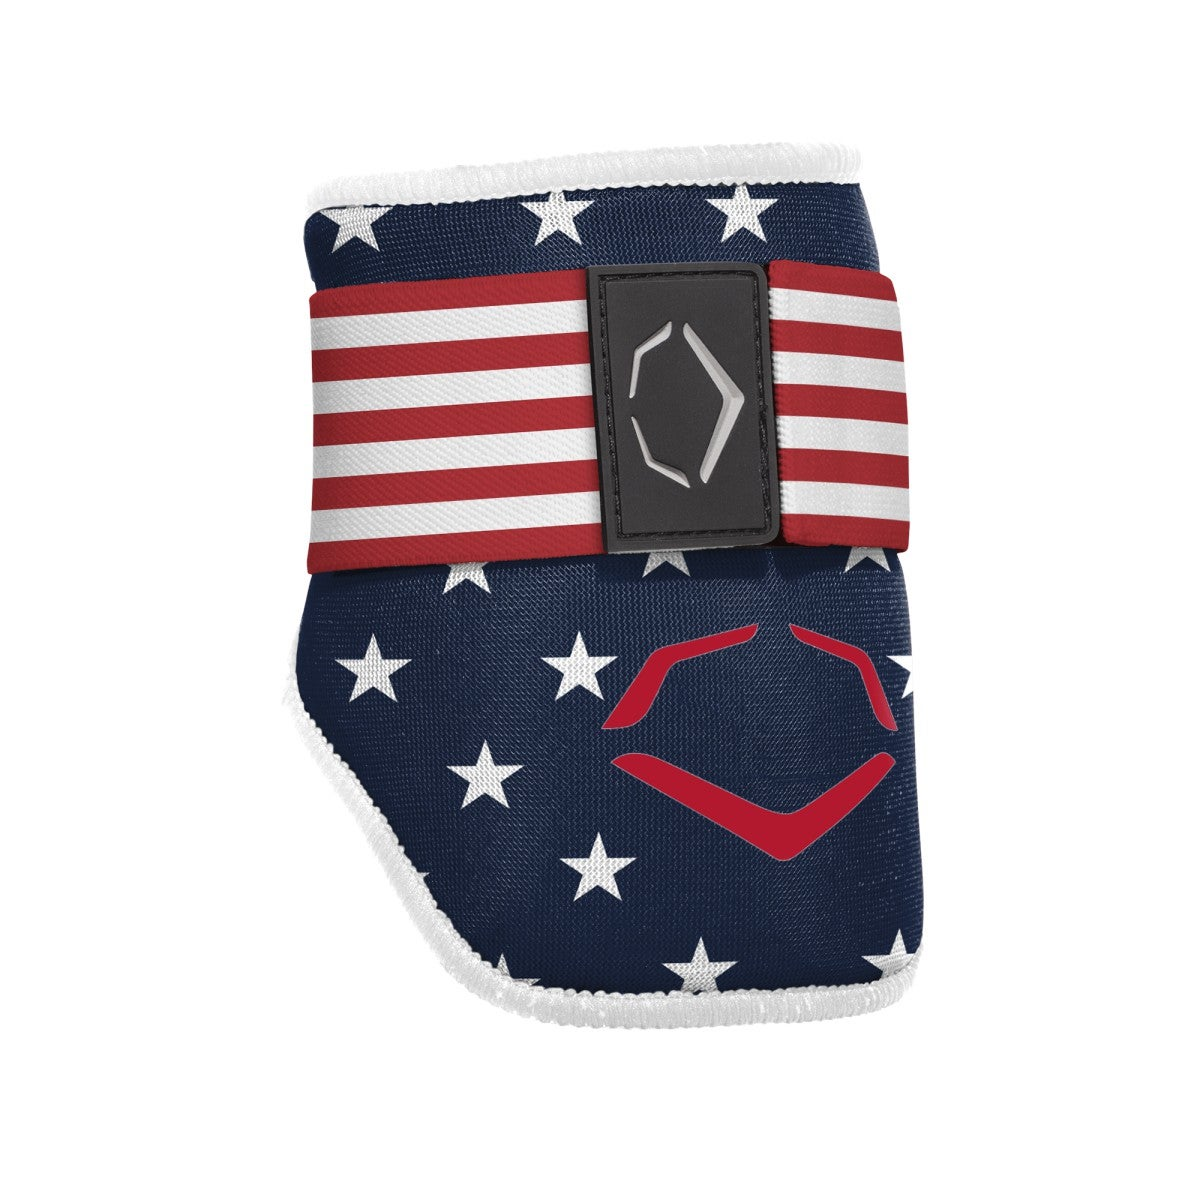 EvoX Limited Edition Red, White and Blue Batter's Elbow Guard